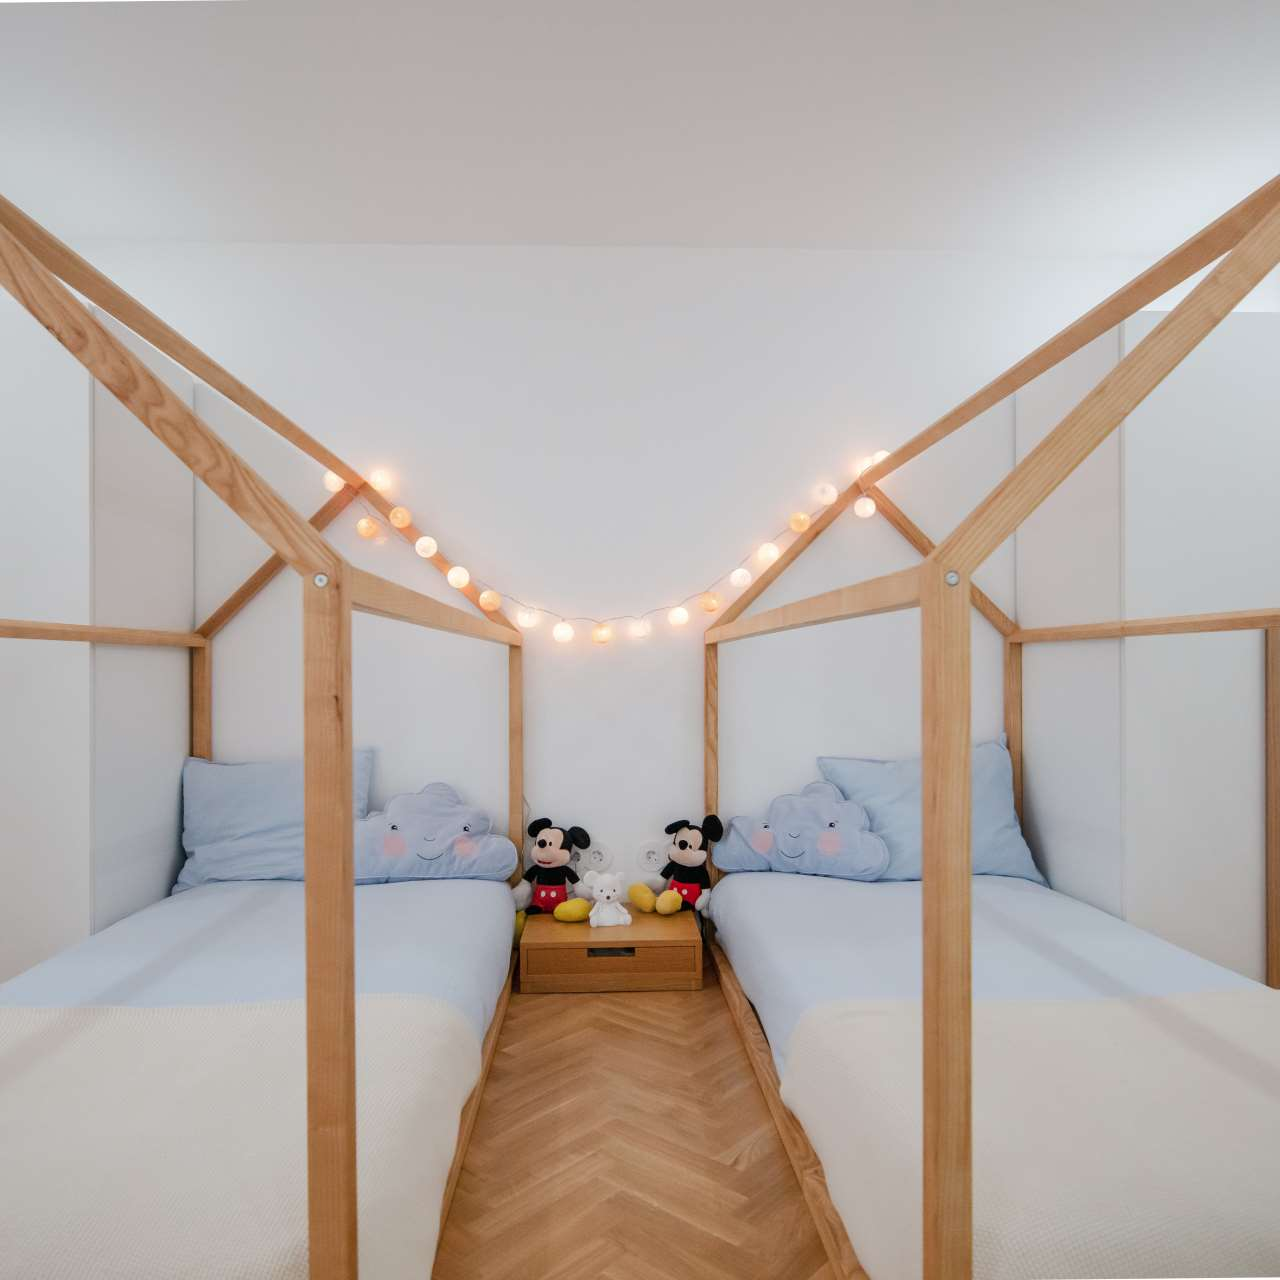 a stylish kids room with house shaped beds